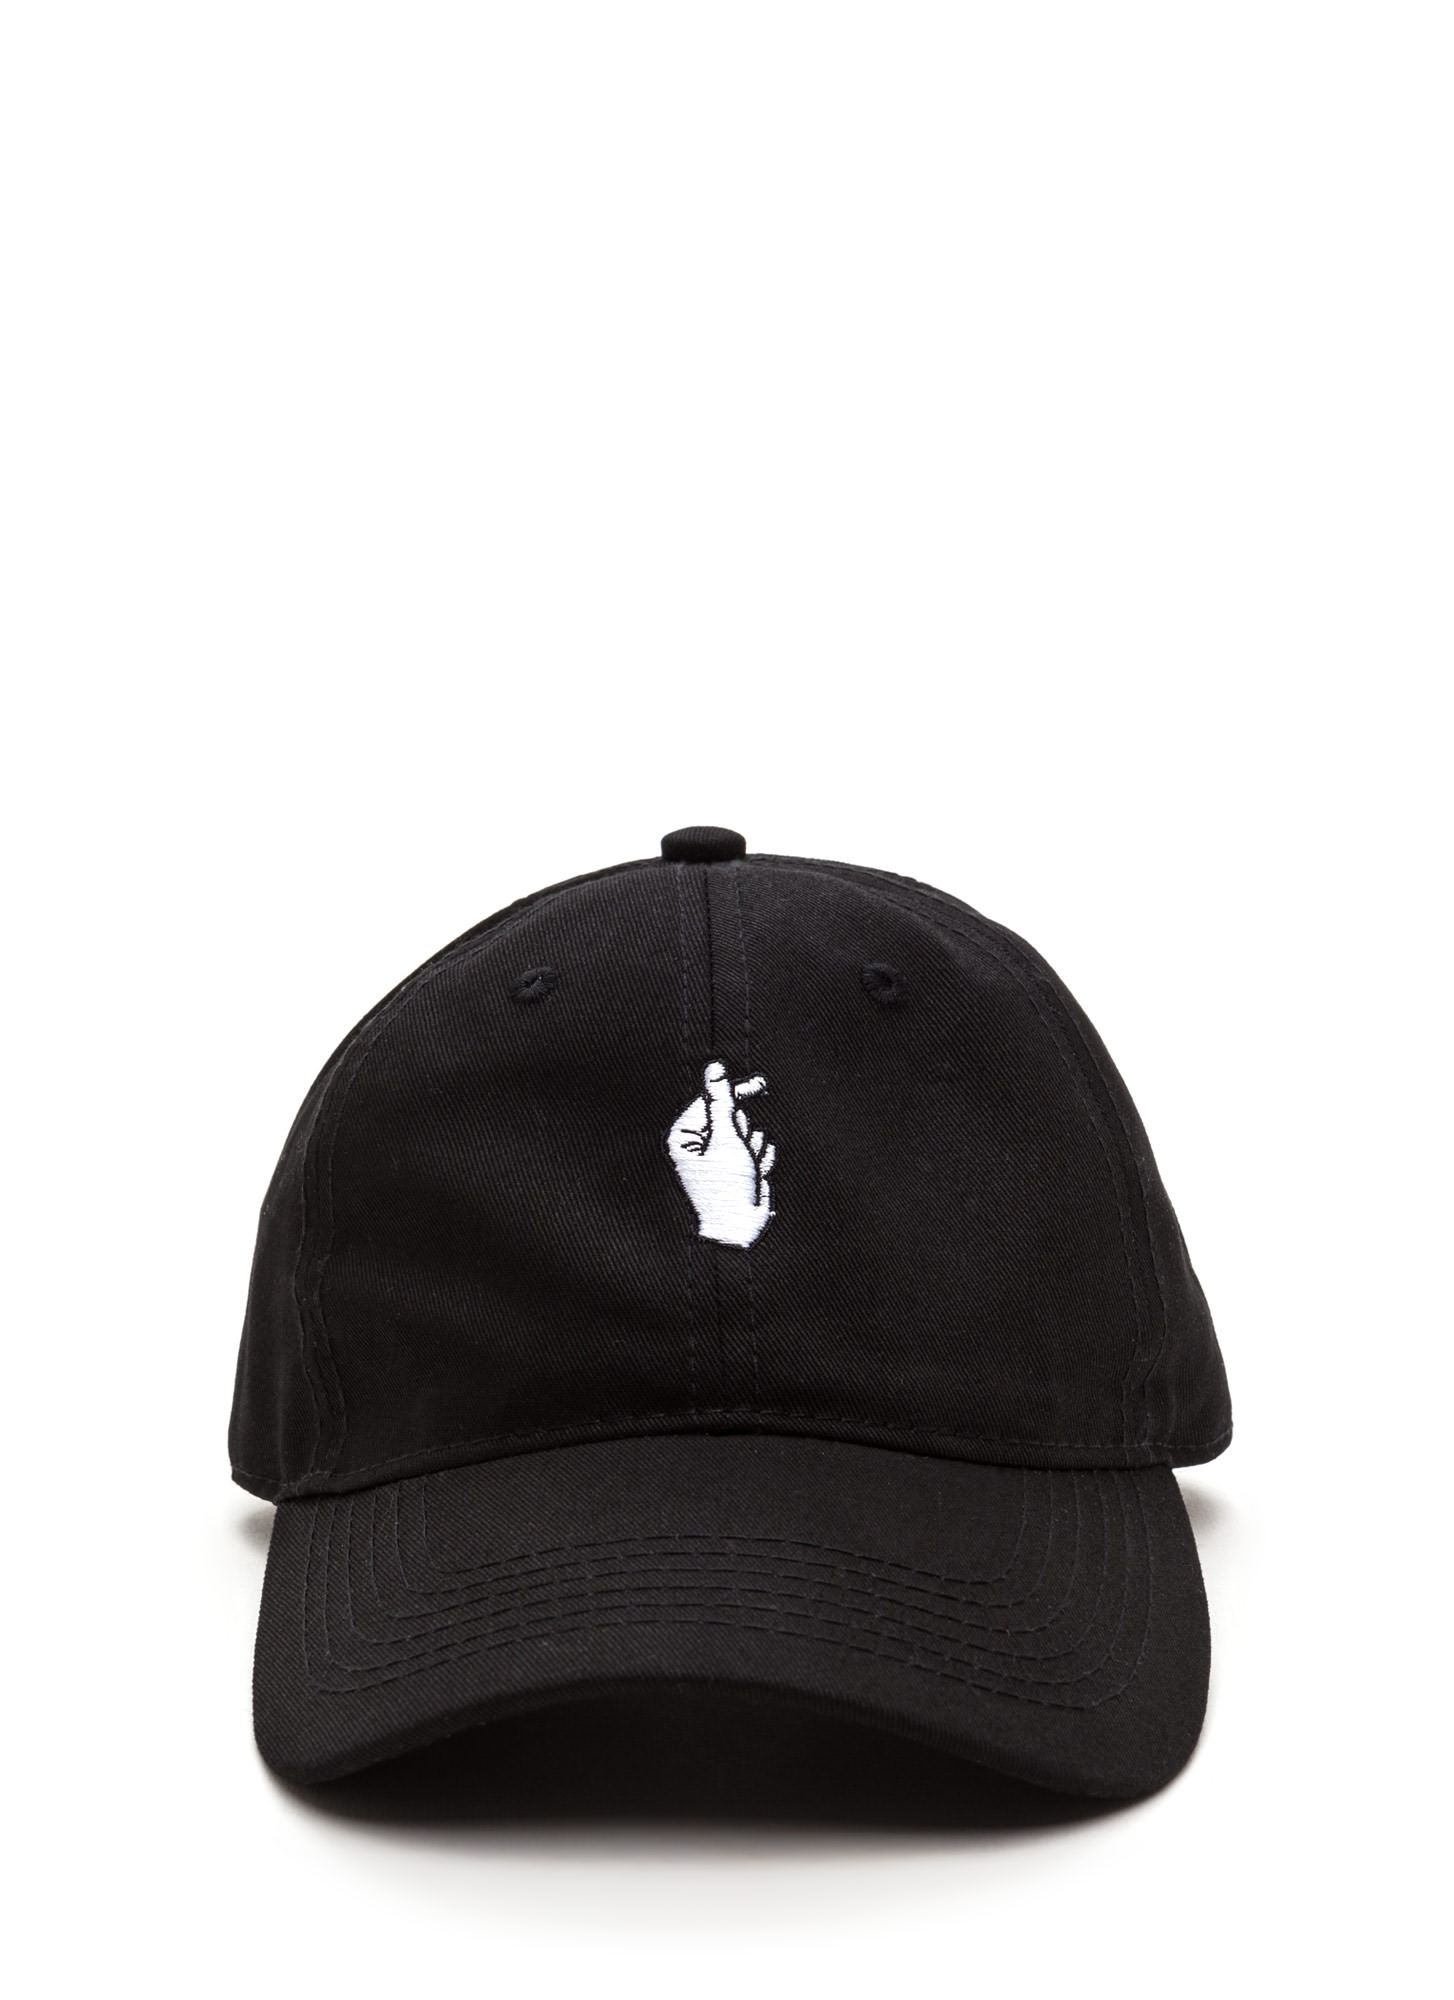 Snap Decisions Embroidered Cap BLACK